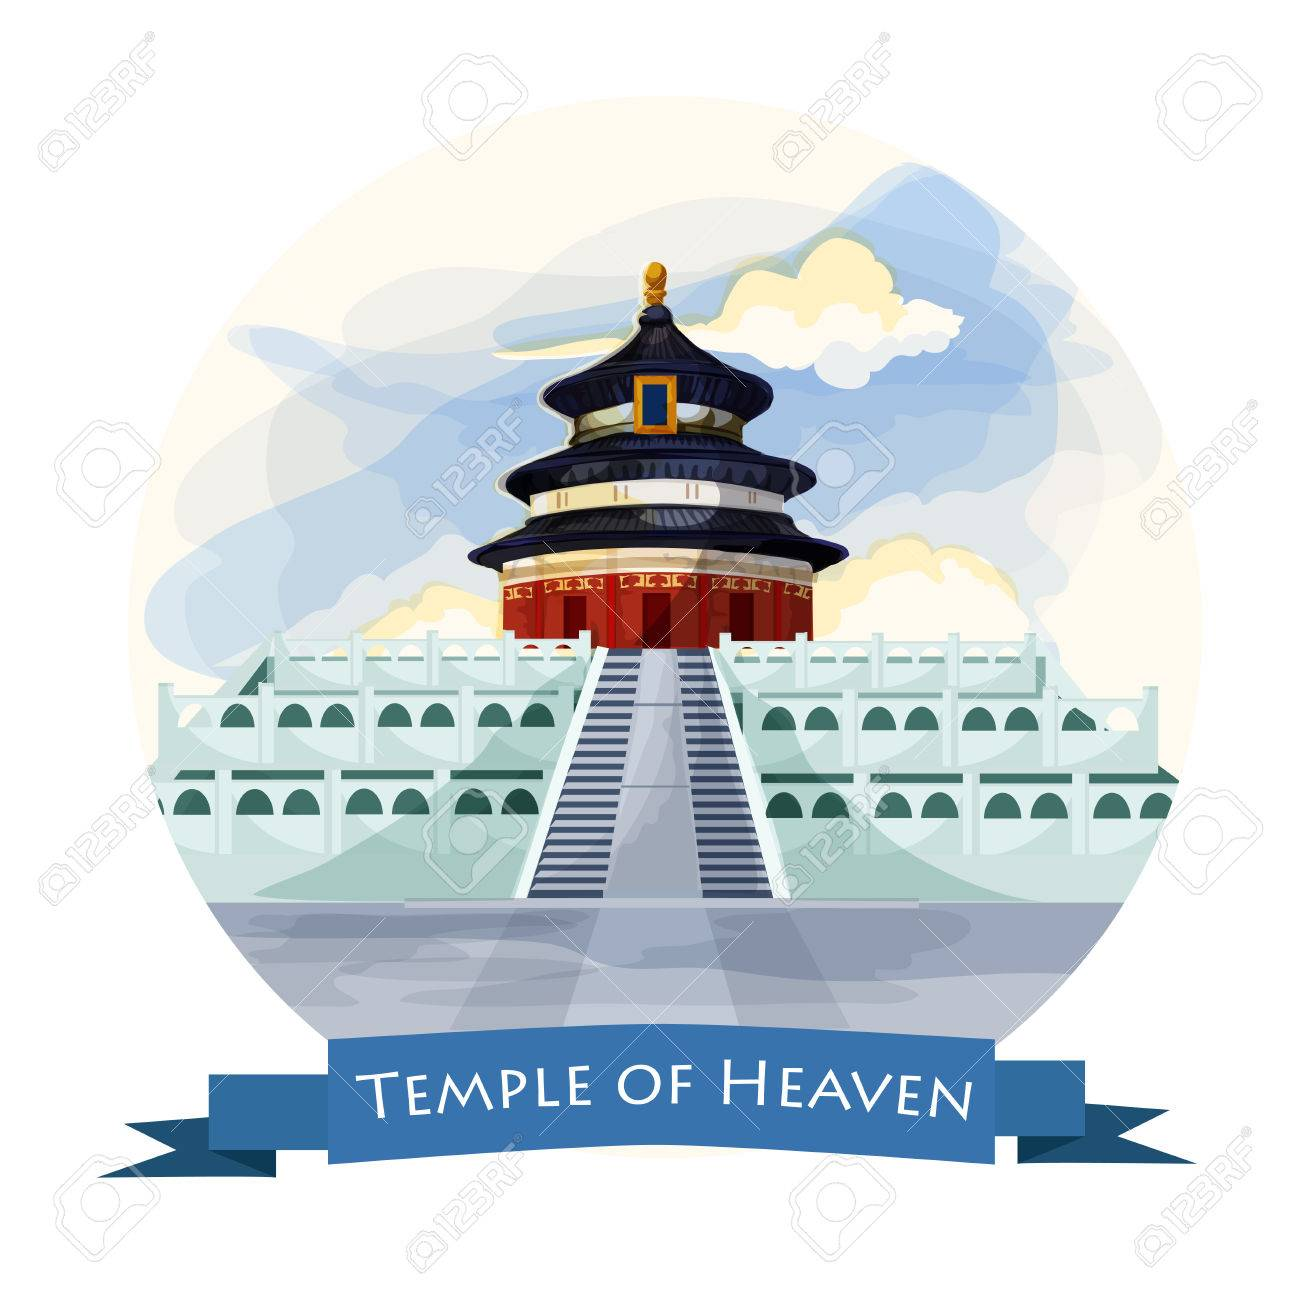 Temple of heaven in china beijing sightseeing historic landmark temple of heaven in china beijing sightseeing historic landmark icon chinese architecture culture symbol buycottarizona Gallery